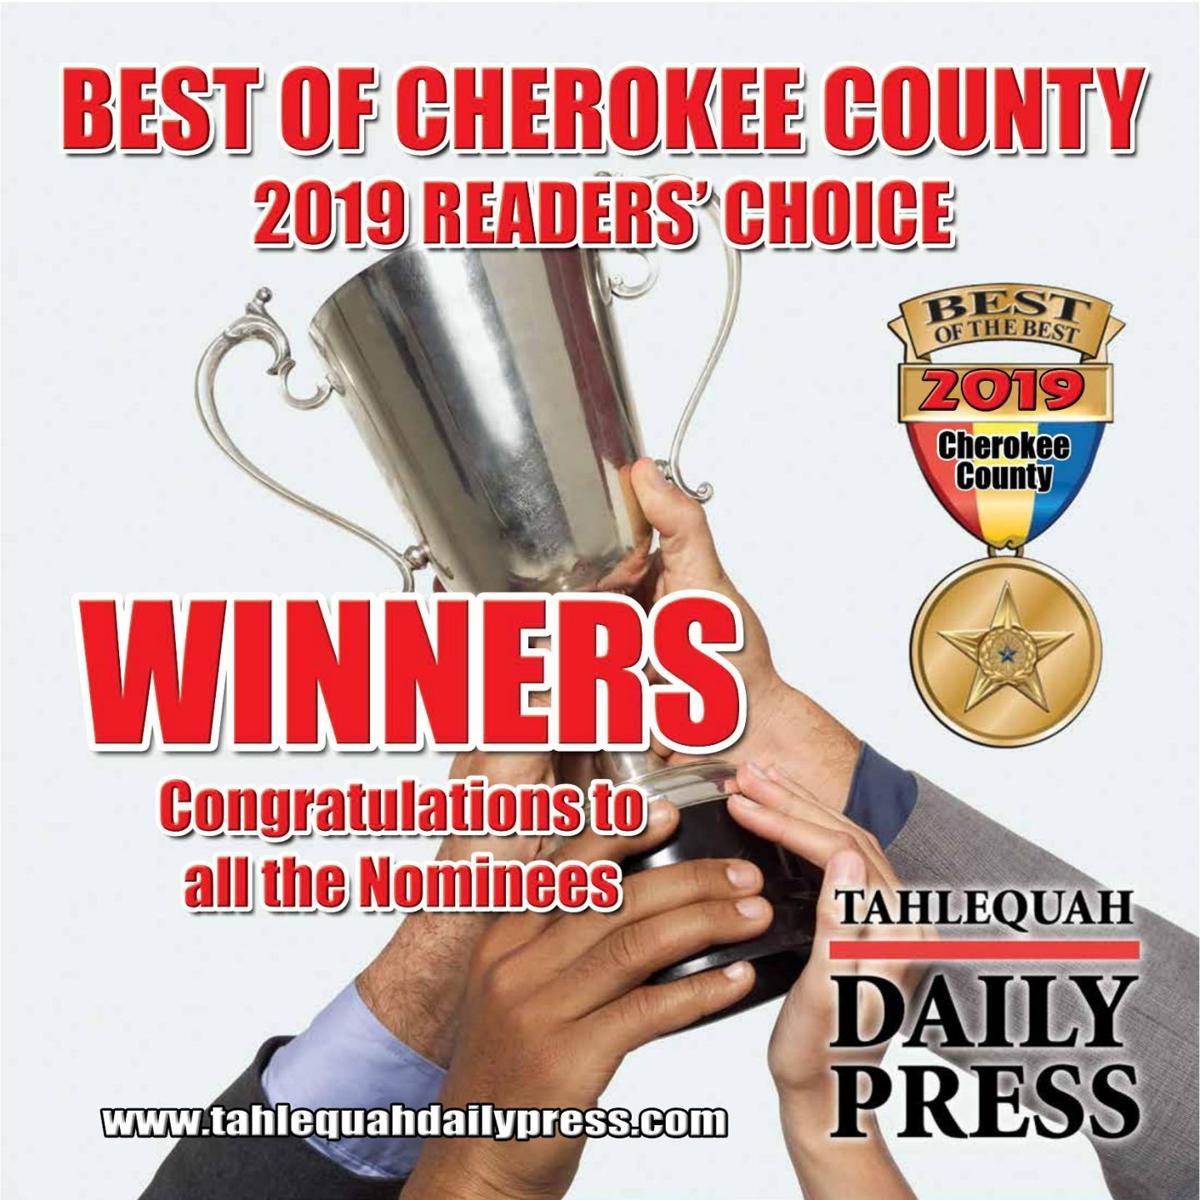 2019 Readers' Choice - Best of Cherokee County